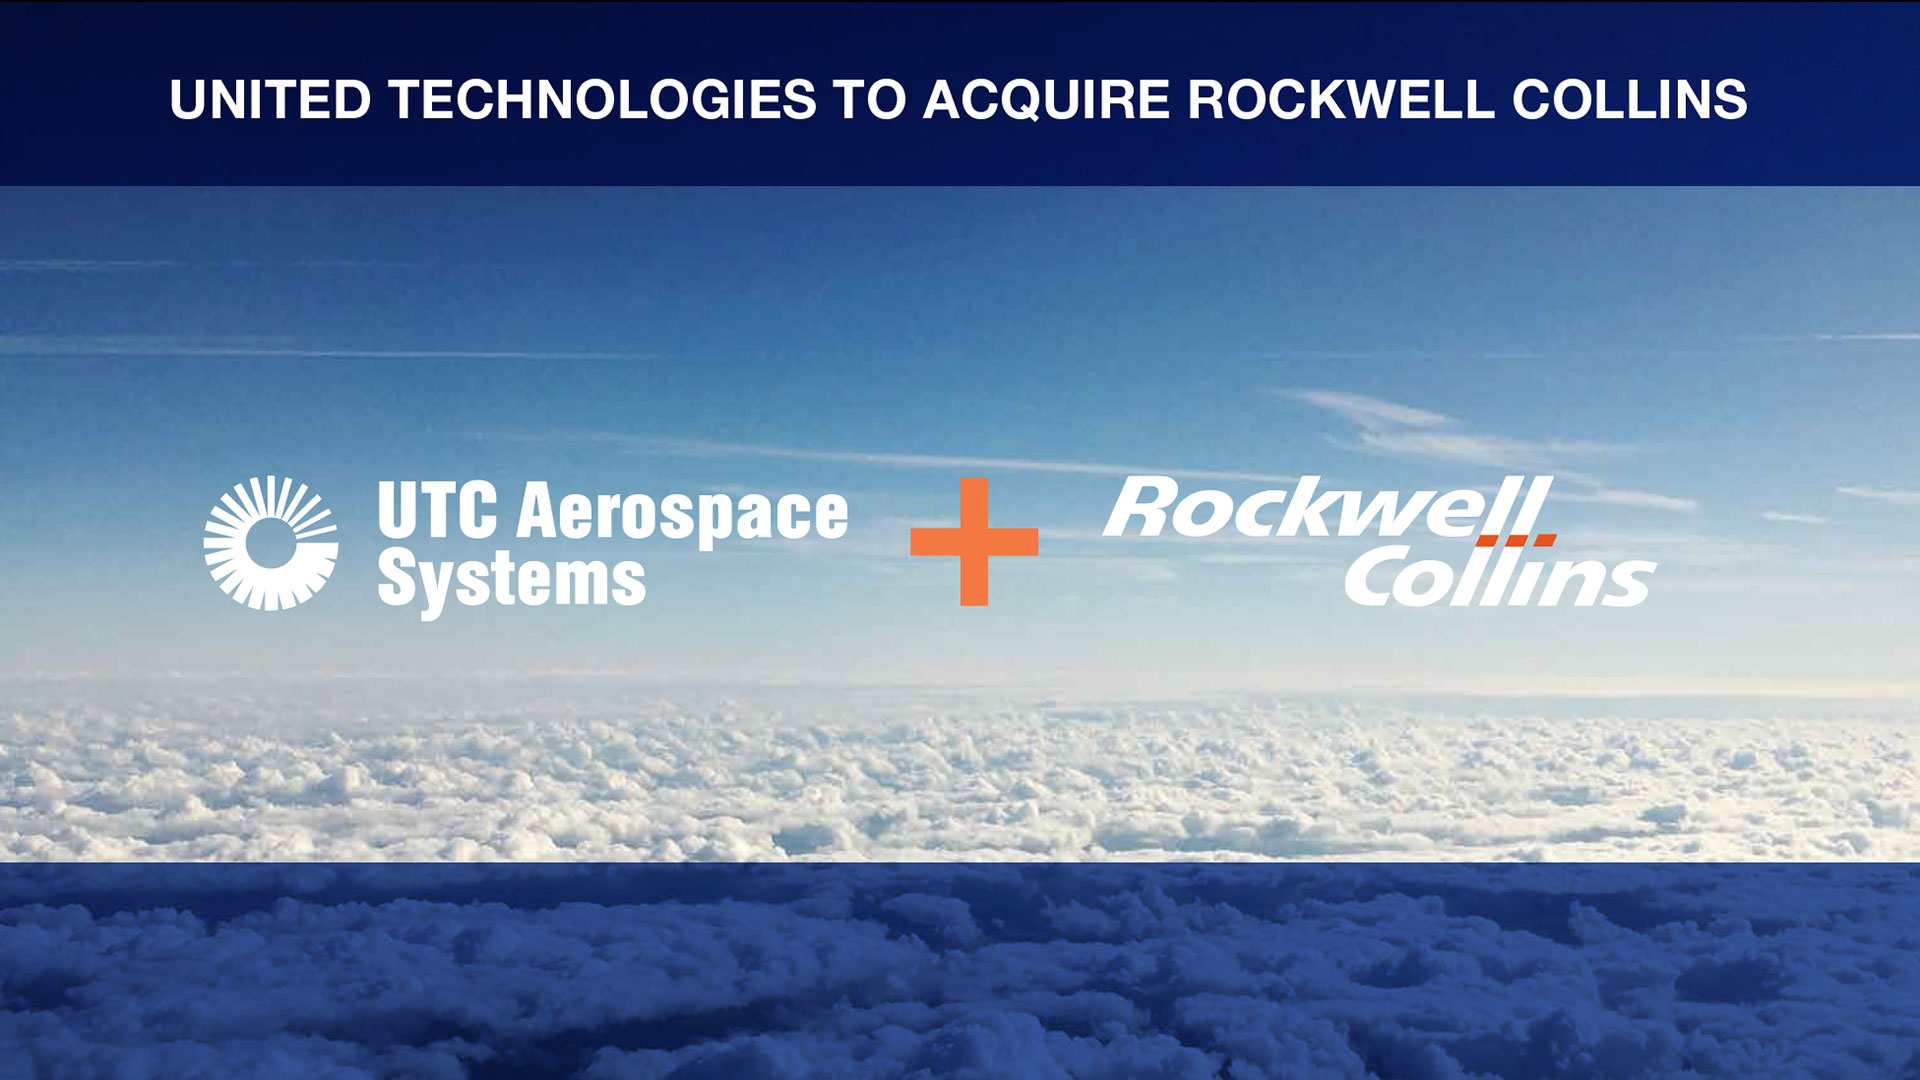 Rockwell Collins Building Trust Every Day